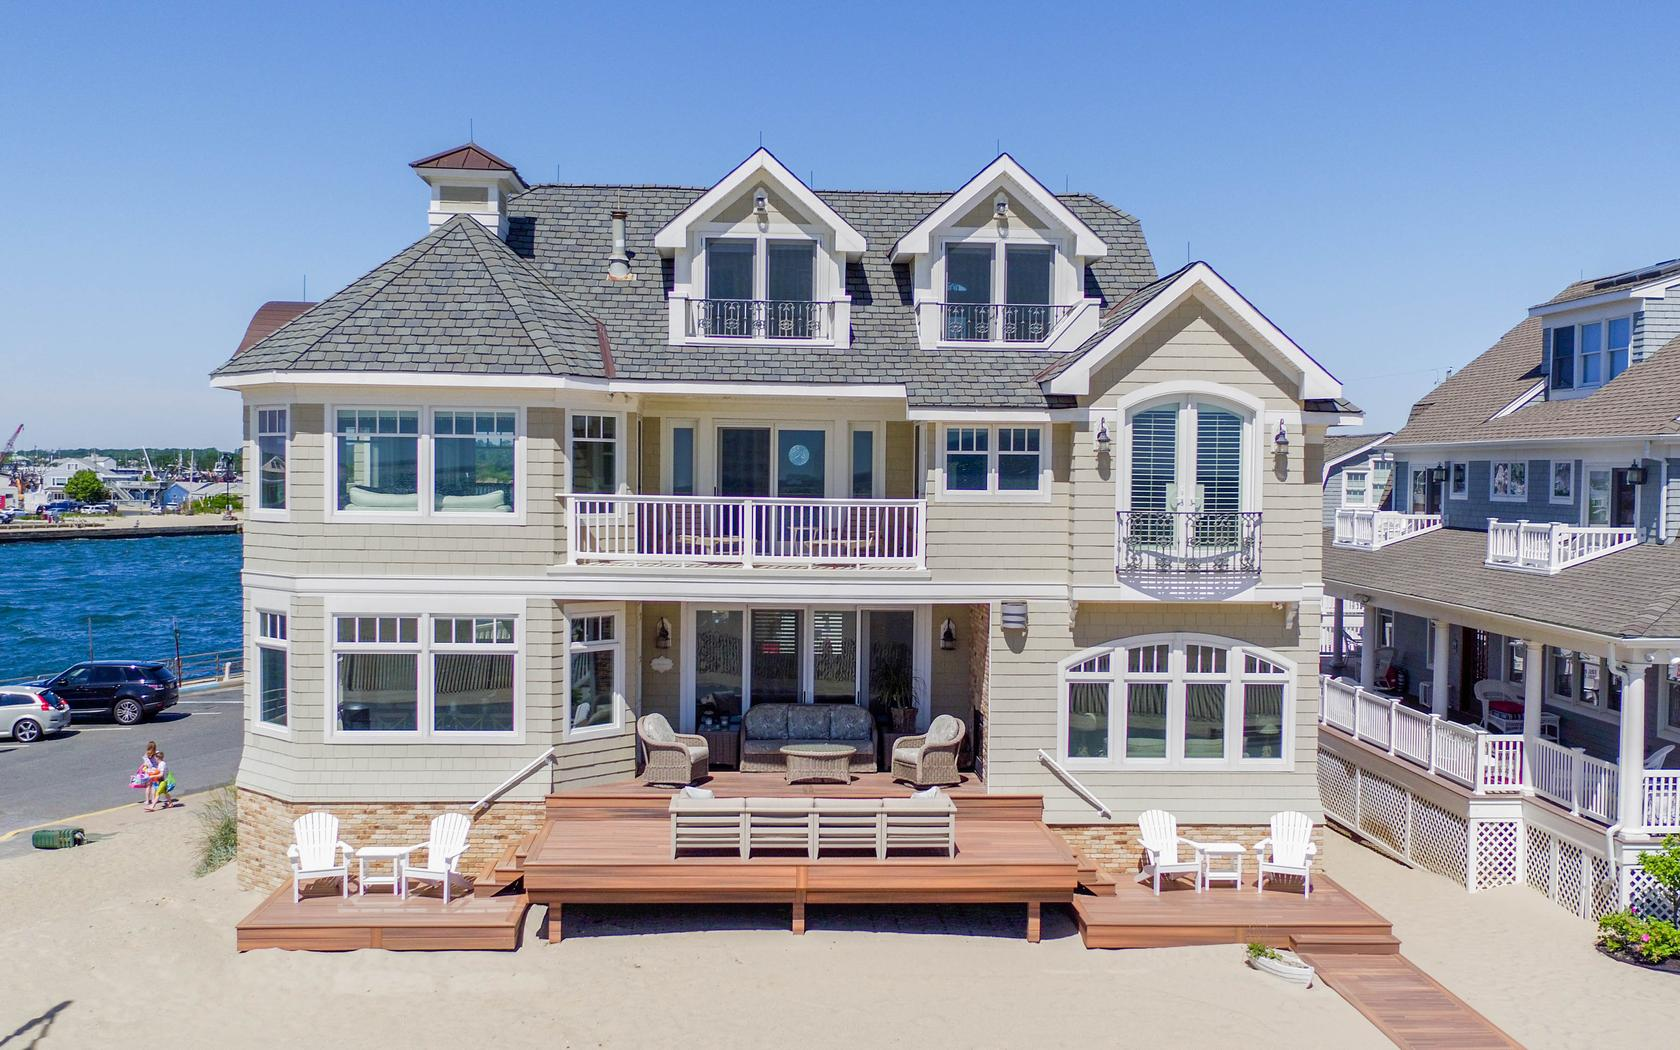 Maison unifamiliale pour l Vente à Perfection Knows No Boundaries! 431 Beach Front Manasquan, New Jersey, 08736 États-Unis